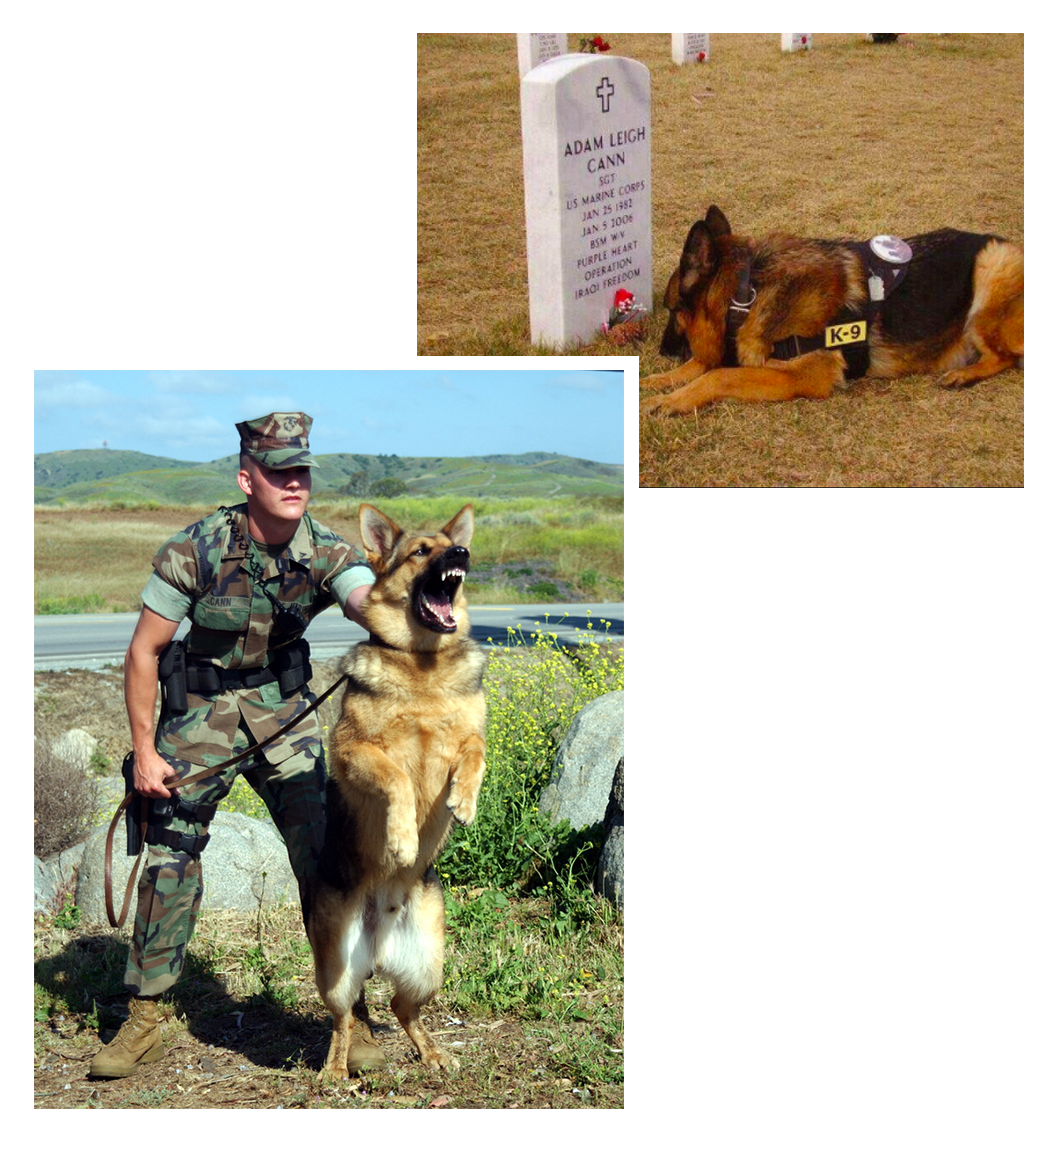 Top Right: Bruno laying down at Sgt. Adam Cann's grave. Bottom Left: Bruno and Sgt. Adam Cann in action.